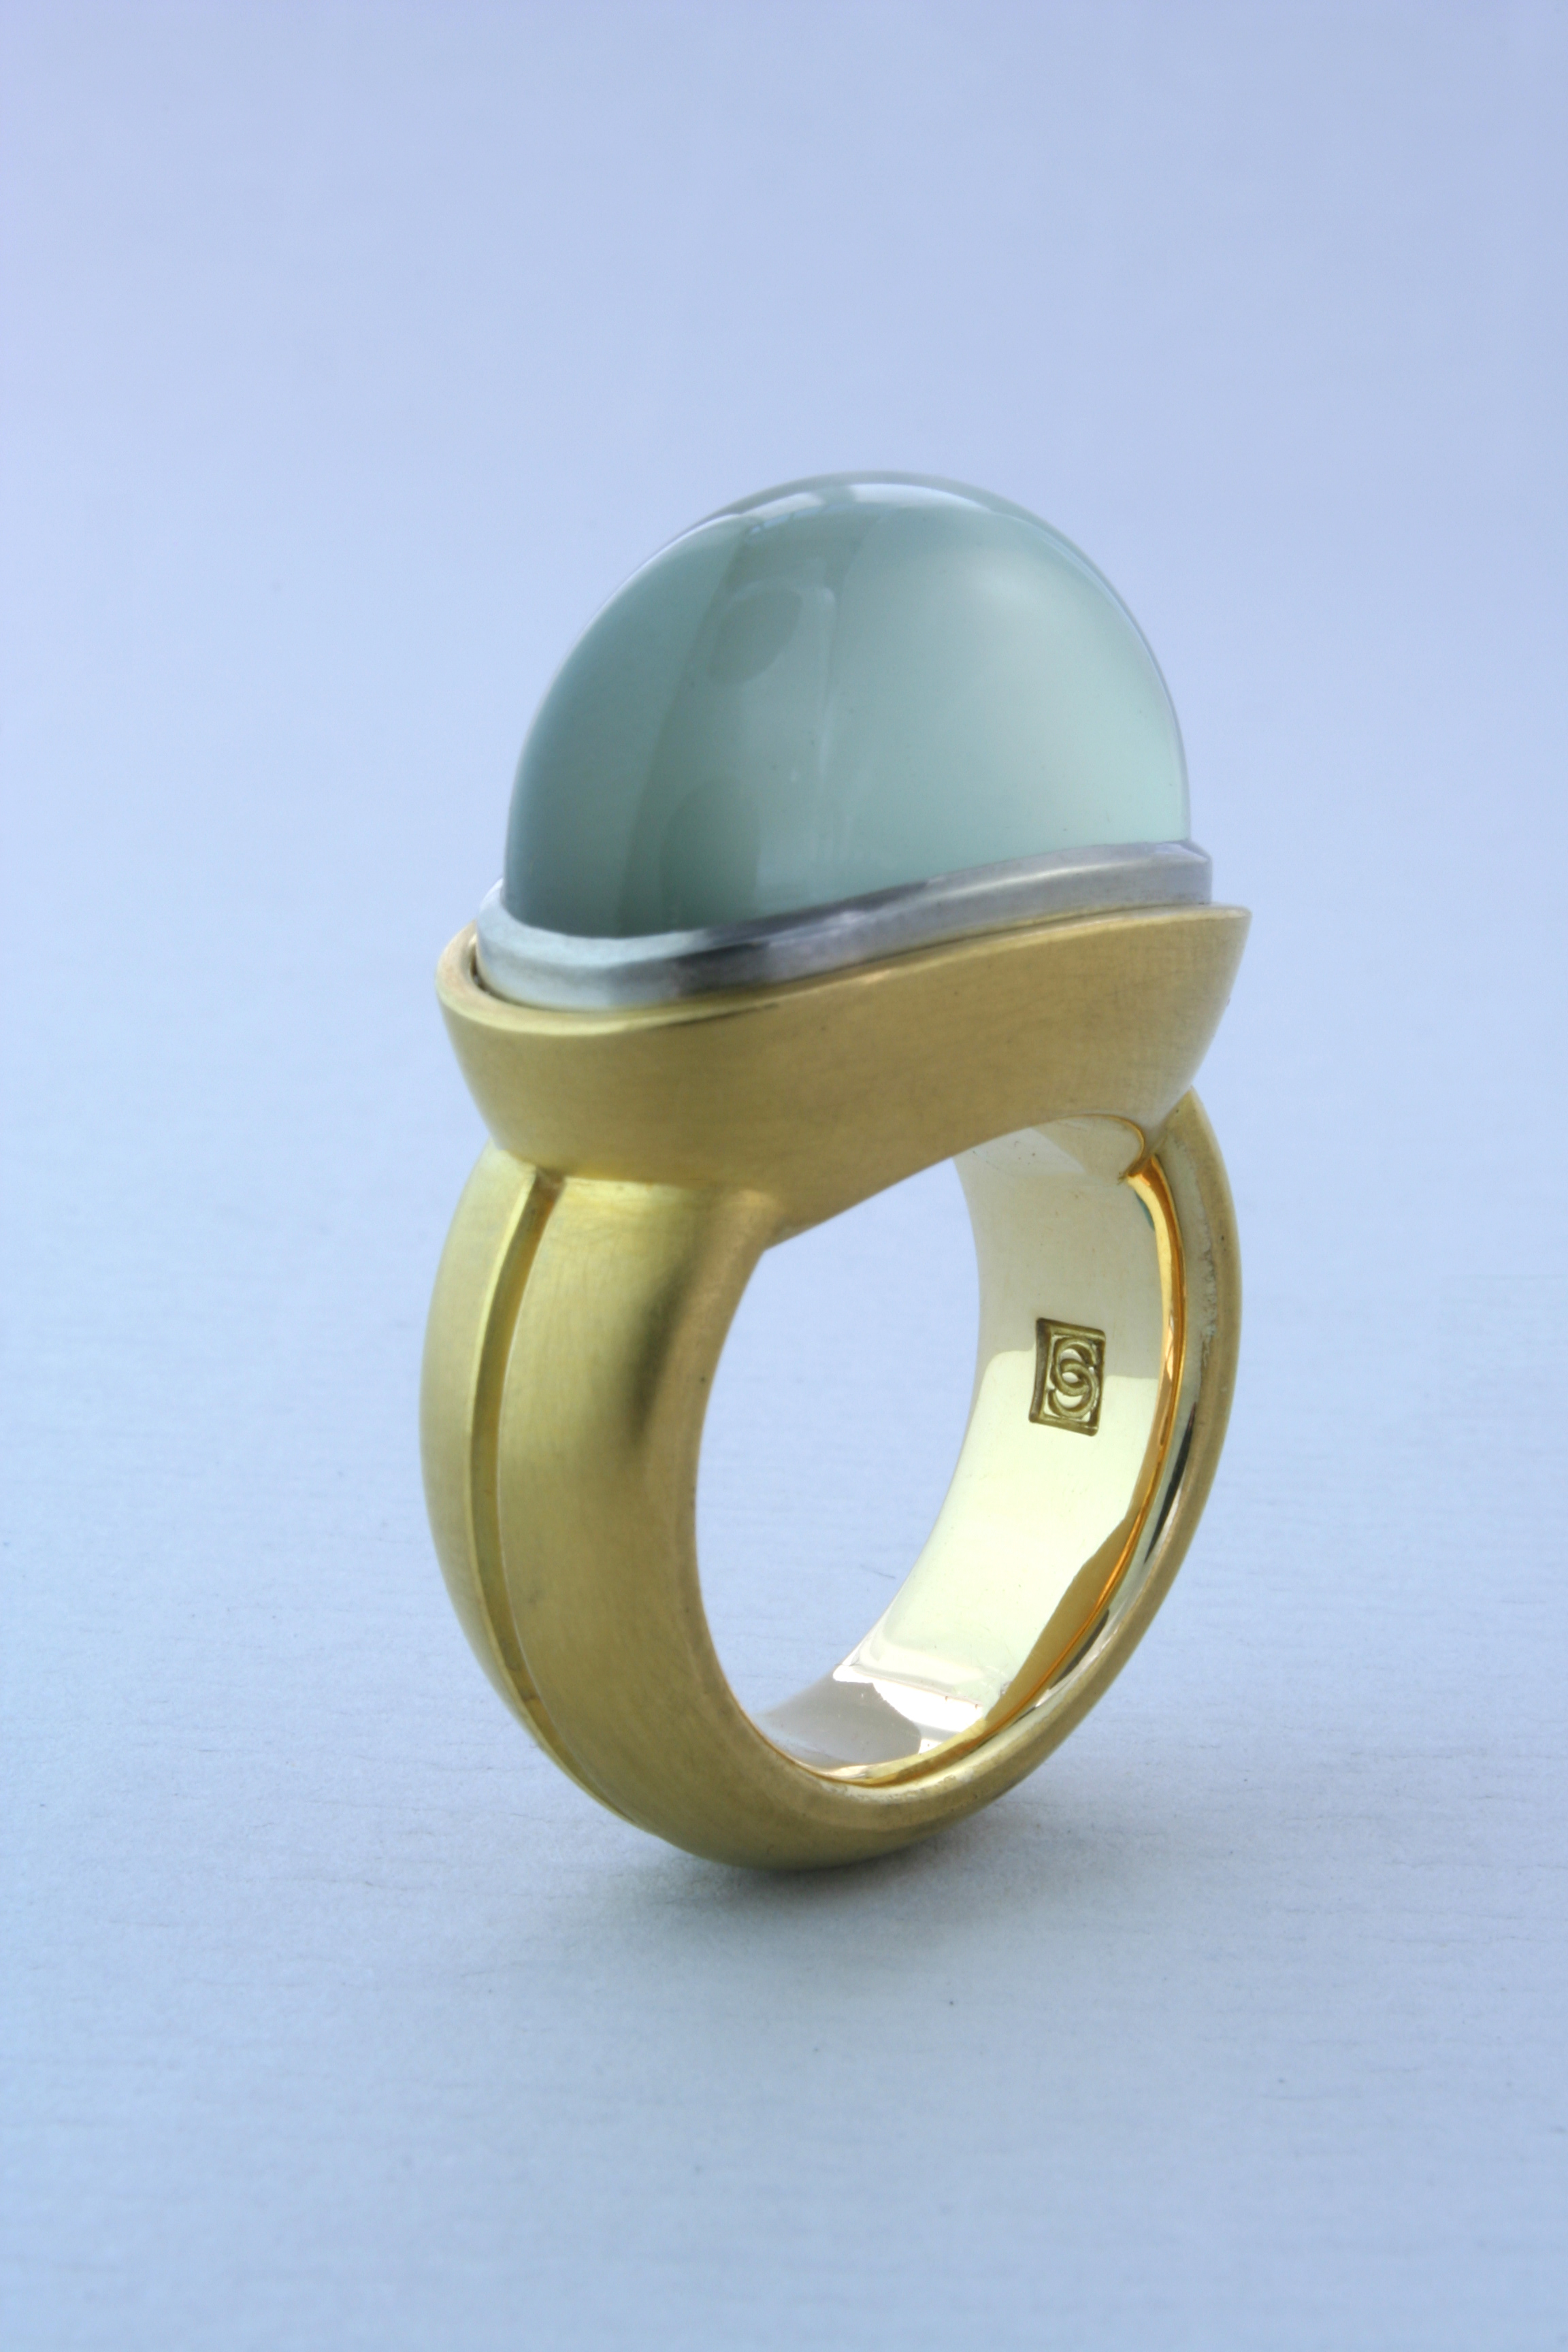 Ring w. green moonstone, 18Kt yellow and white gold.